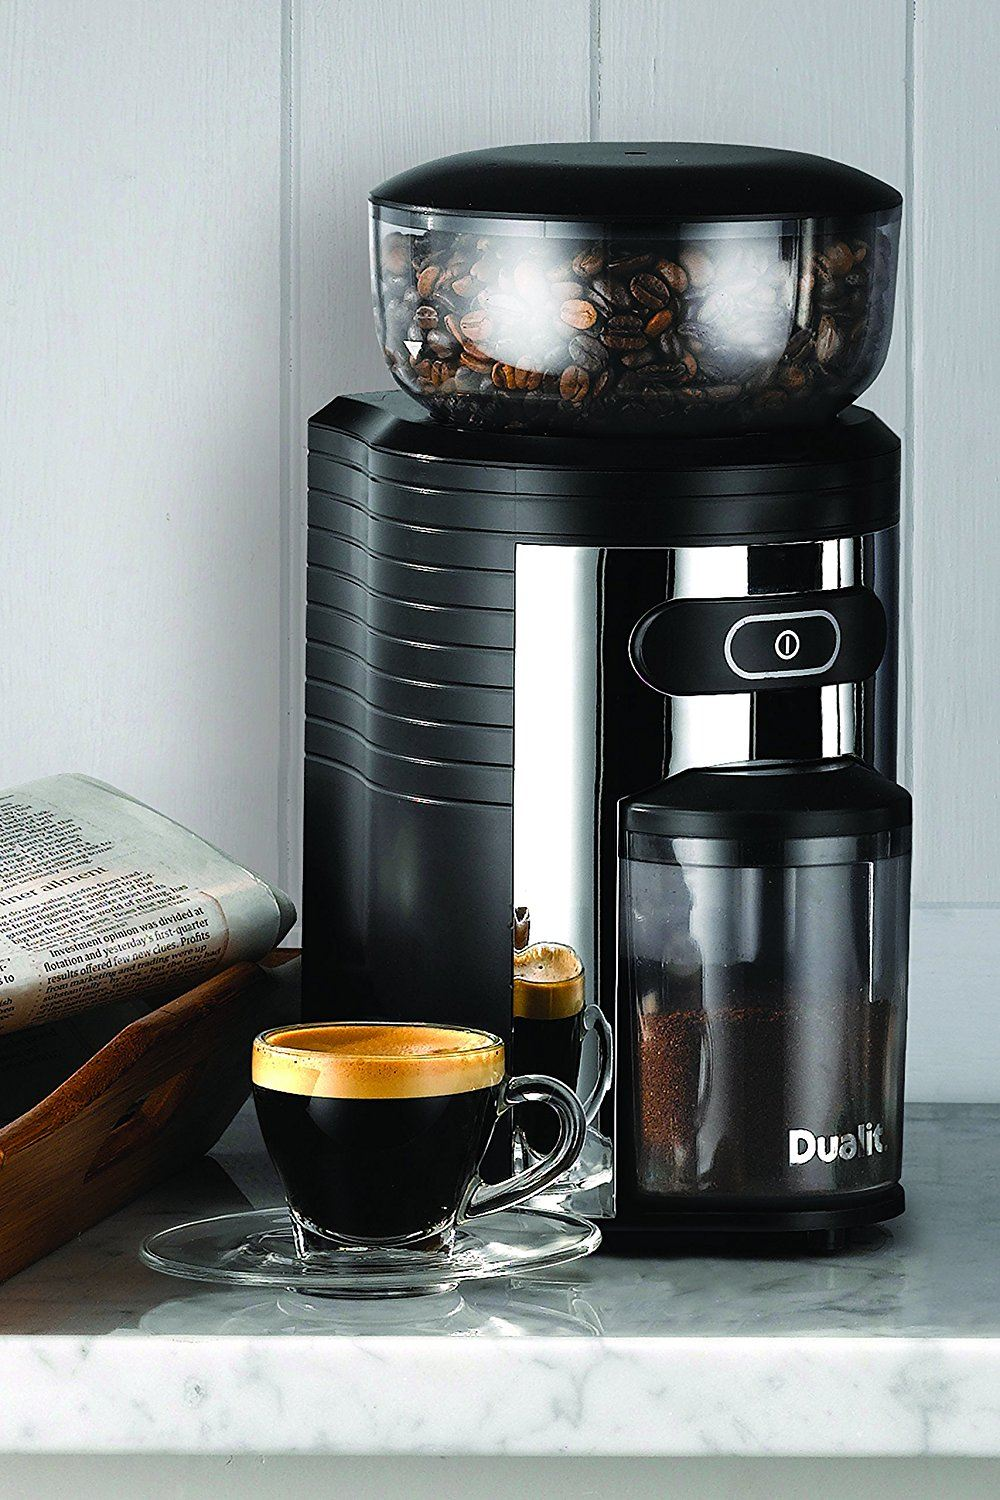 Dualit 75015 electric burr coffee grinder